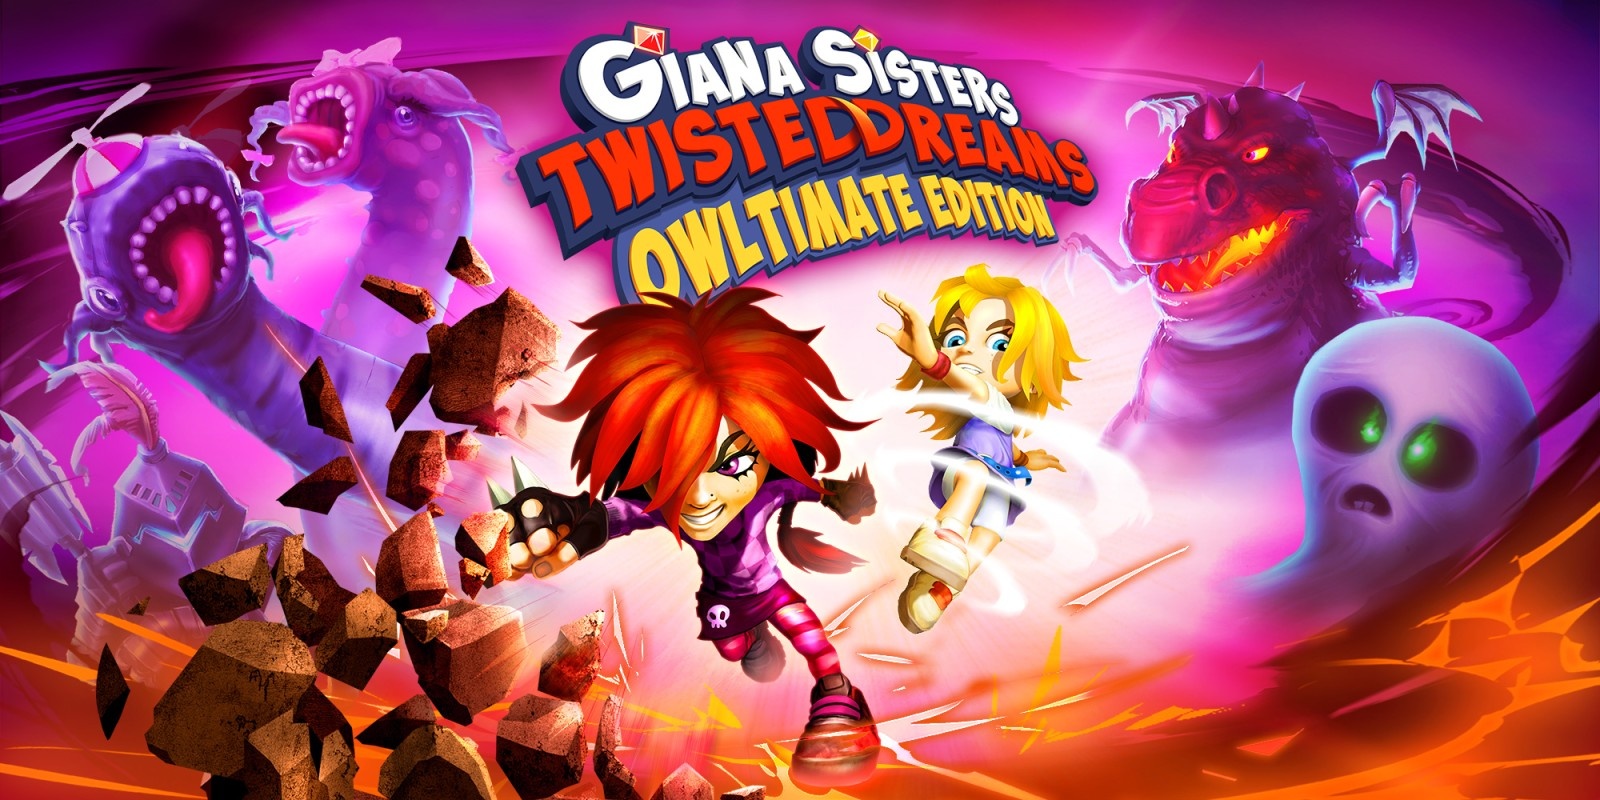 Giana Sisters: Twisted Dreams - Owltimate Edition